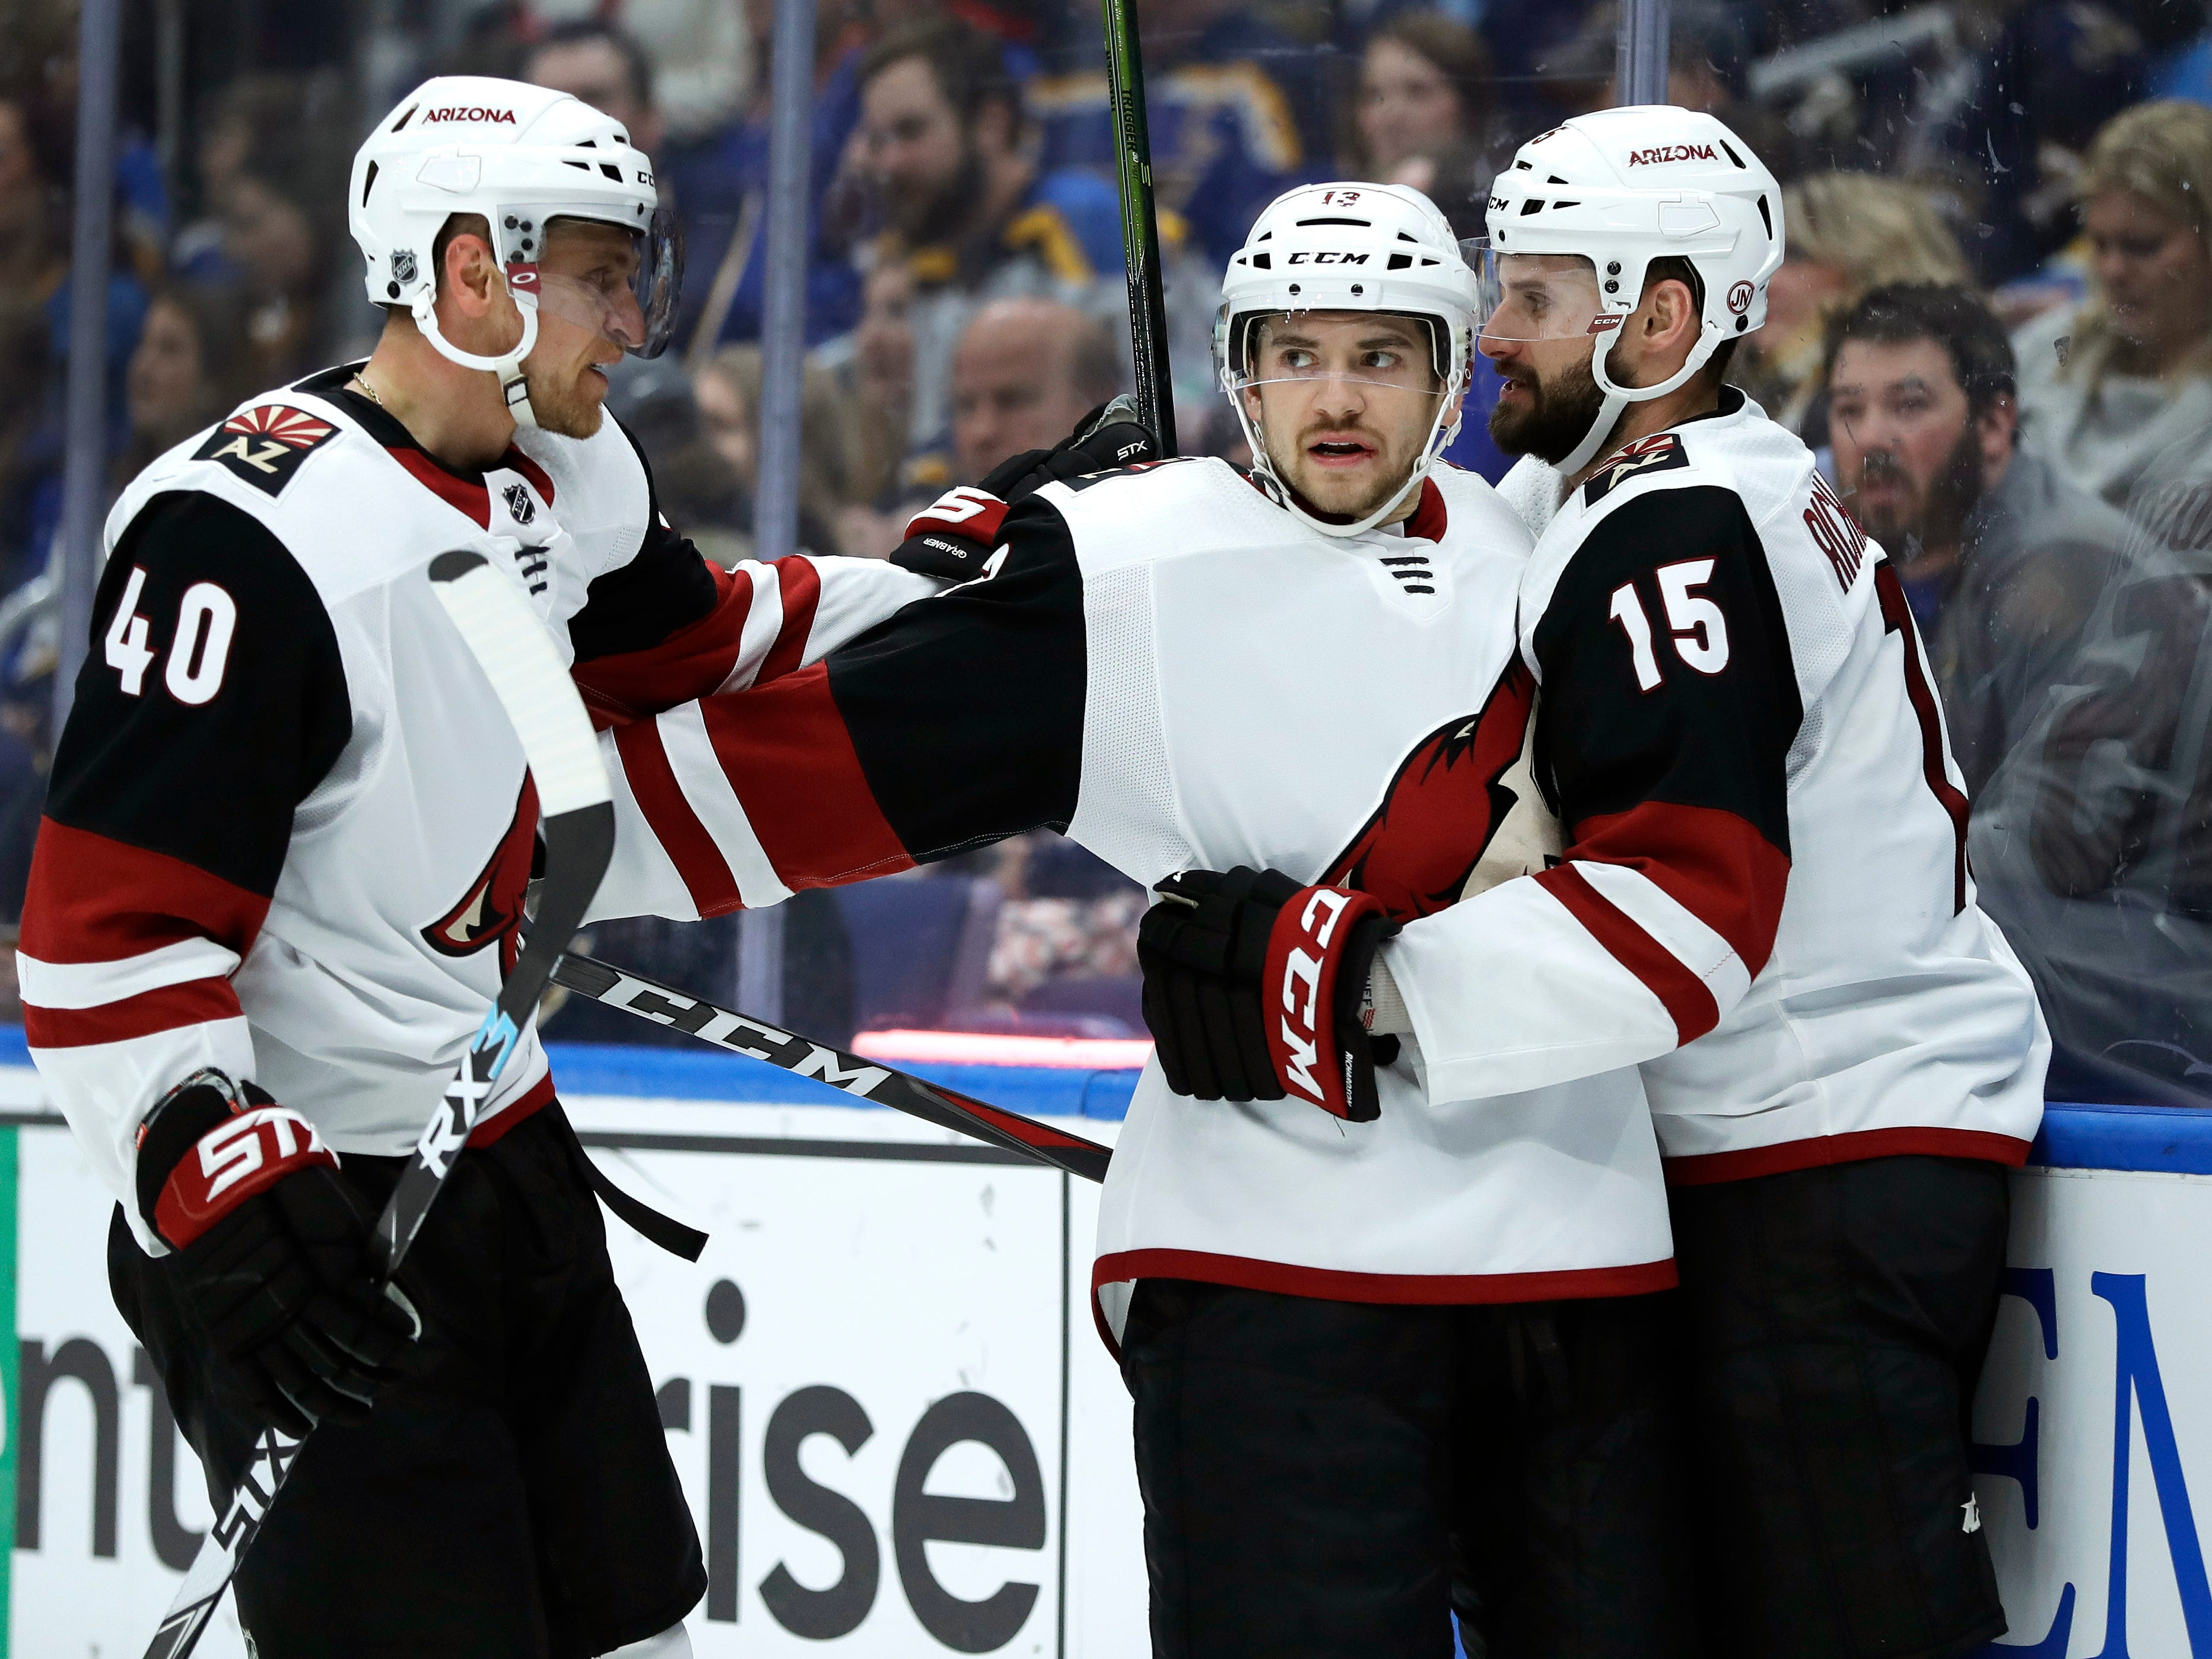 Arizona Coyotes' Vinnie Hinostroza, center, is congratulated by teammates Michael Grabner, of Austria, and Brad Richardson (15) after scoring during the third period of an NHL hockey game against the St. Louis Blues, Tuesday, March 12, 2019, in St. Louis. The Coyotes won 3-1.